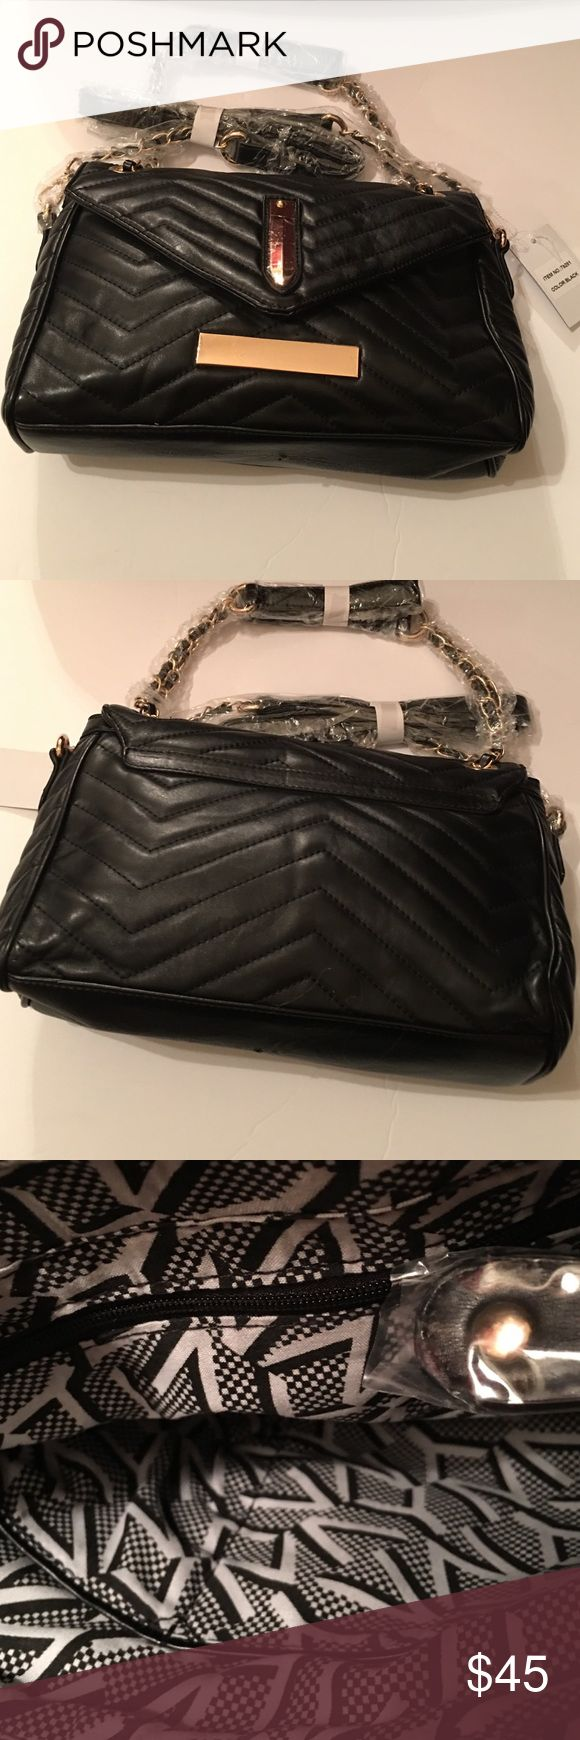 """Beni Chevron Quilted Shoulder Bag (Black) NWT. Beni chevron quilted shoulder bag made from Faux leather. The bag features zip top closure with gold tone hardware and a detachable shoulder strap. Dimensions are L 11"""" X H 7.5"""" X W 3"""" (12"""" D). Bags Shoulder Bags"""